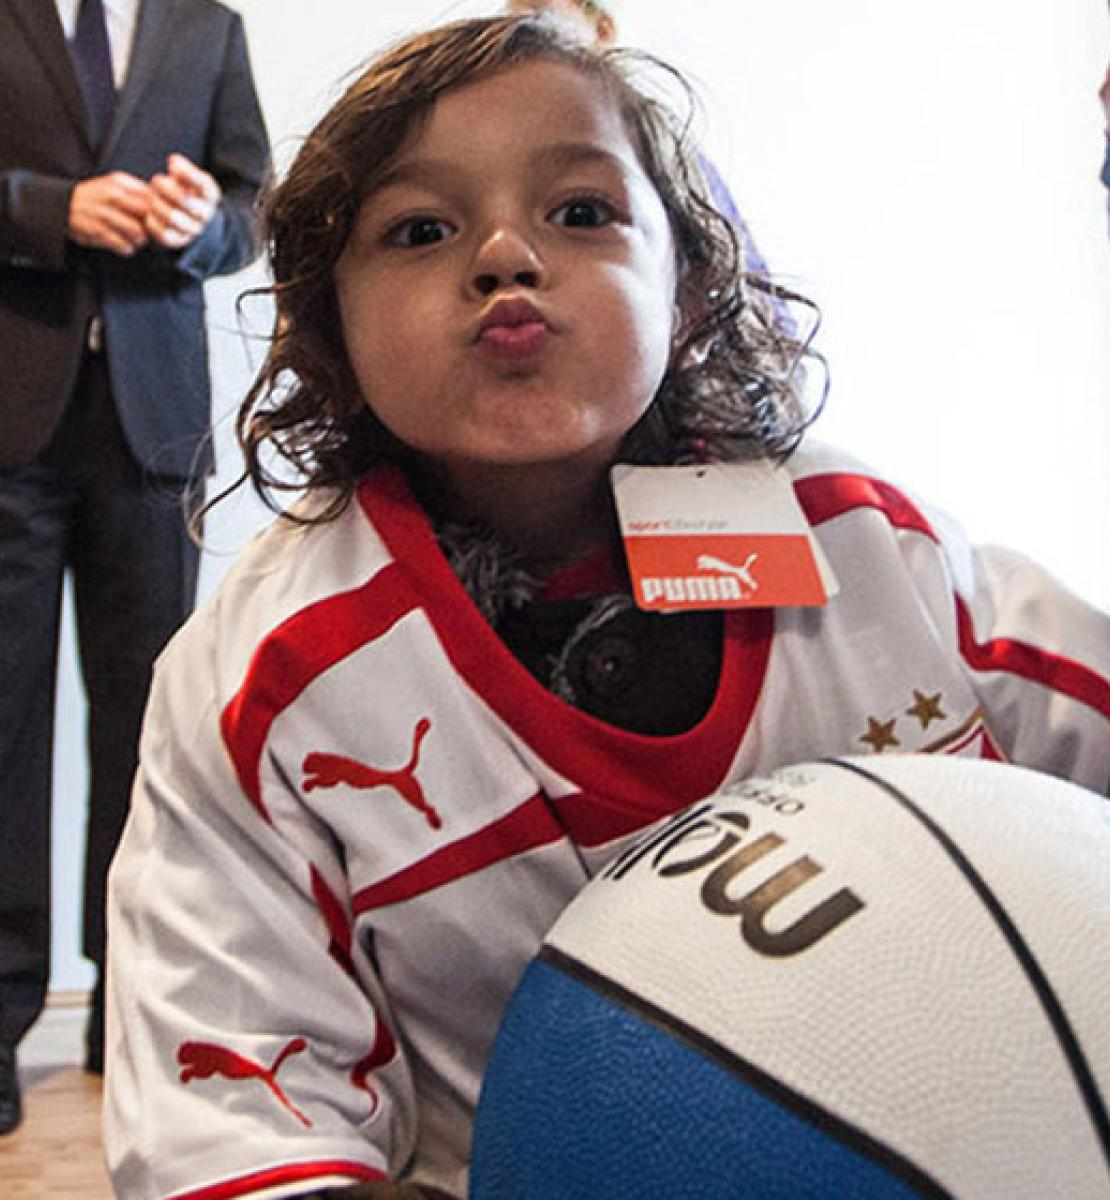 A little boy holds a basketball and puckers his lips at the camera.